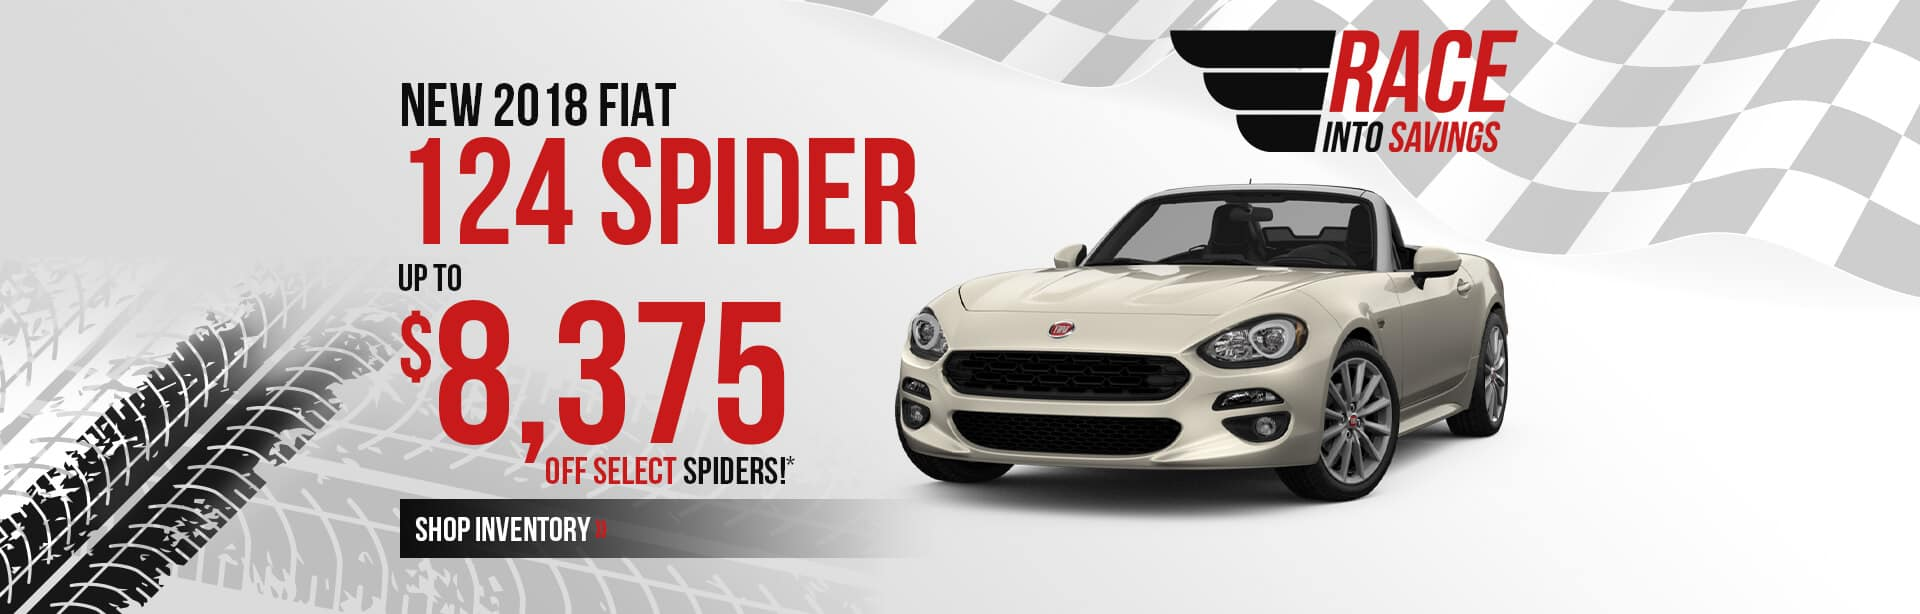 124 Spider Inventory in Indianapolis, Indiana.